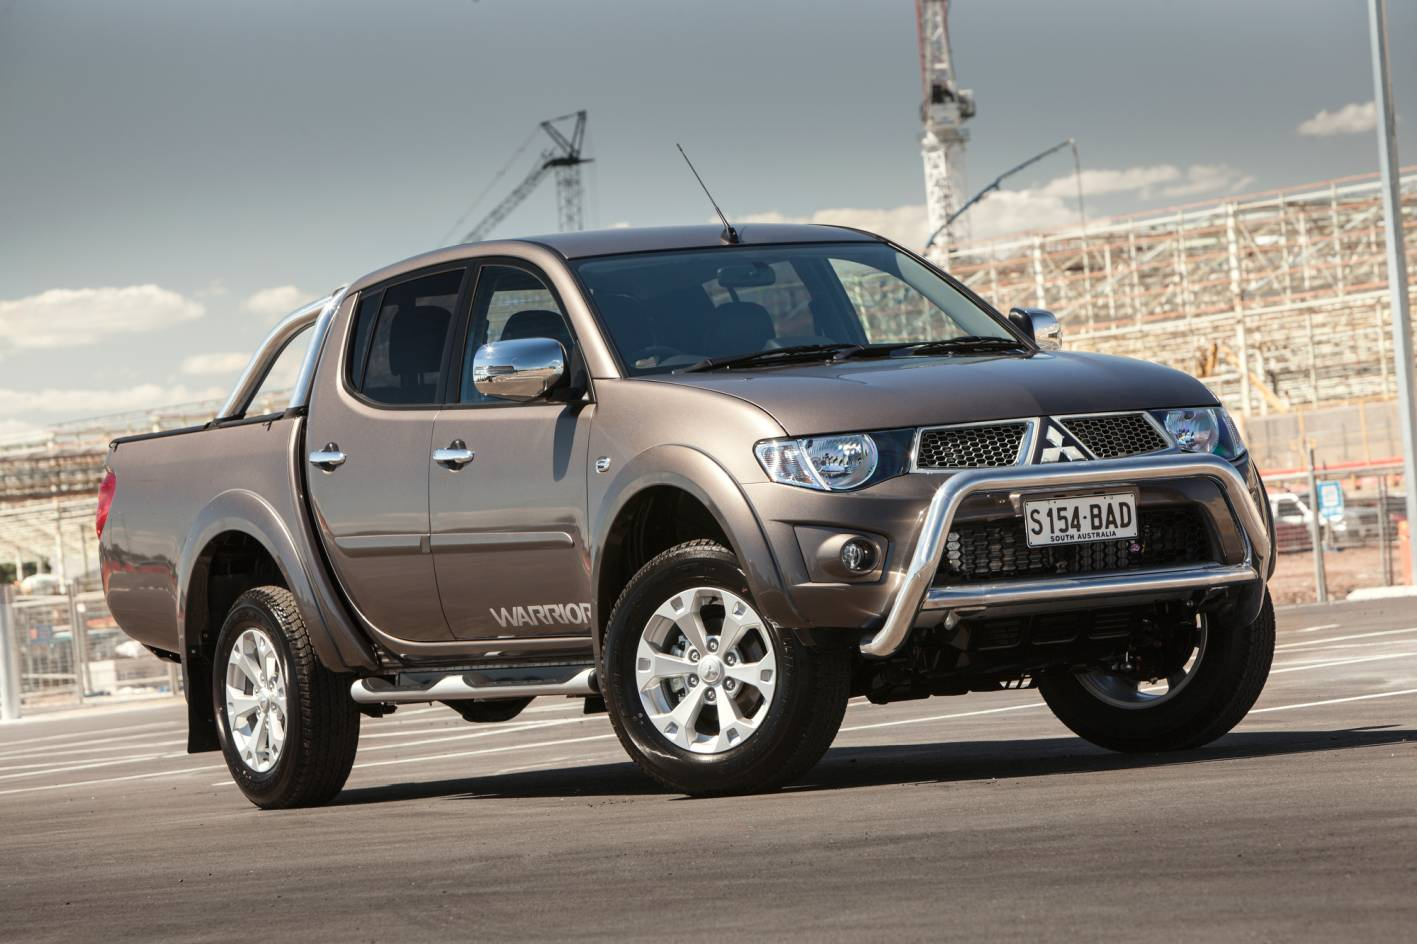 Triton is out-gunned on every front by more modern entrants